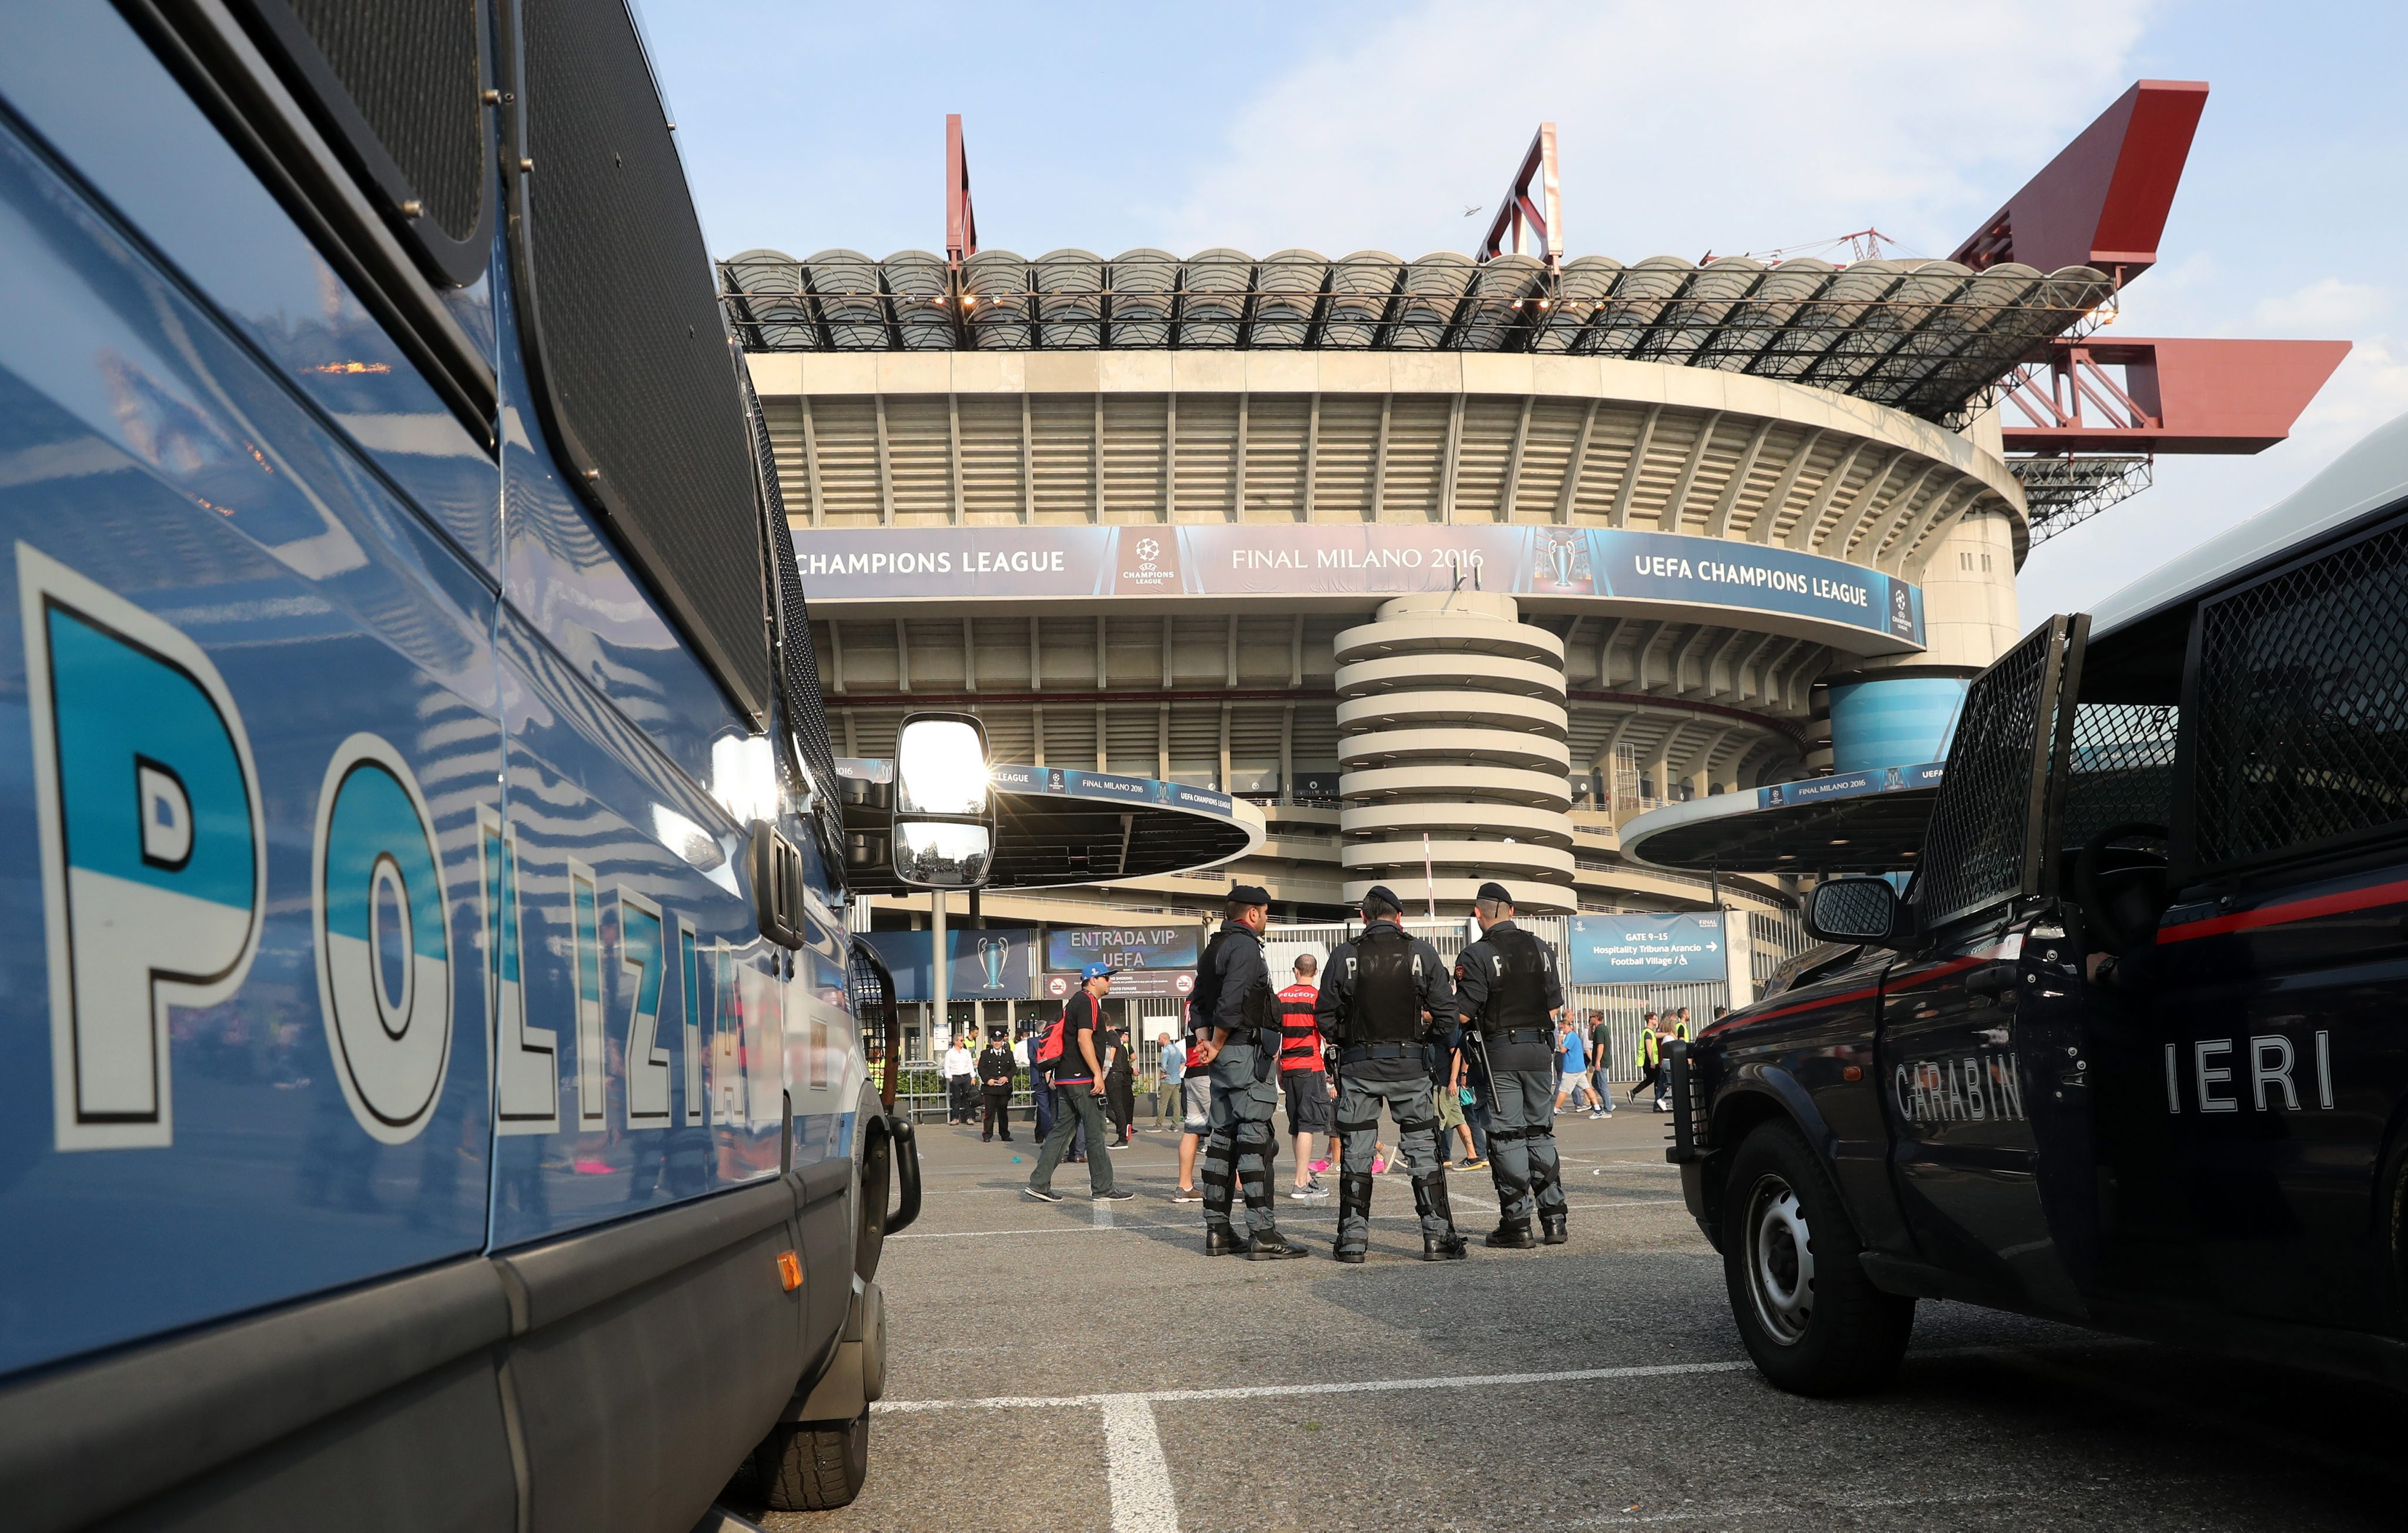 . Milan (Italy), 28/05/2016.- Policemen stand outside the stadium prior to the UEFA Champions League Final between Real Madrid and Atletico Madrid at the Stadio Giuseppe Meazza in Milan, Italy, 28 May 2016. (Liga de Campeones, Italia) EFE/EPA/CHRISTIAN CHARISIUS